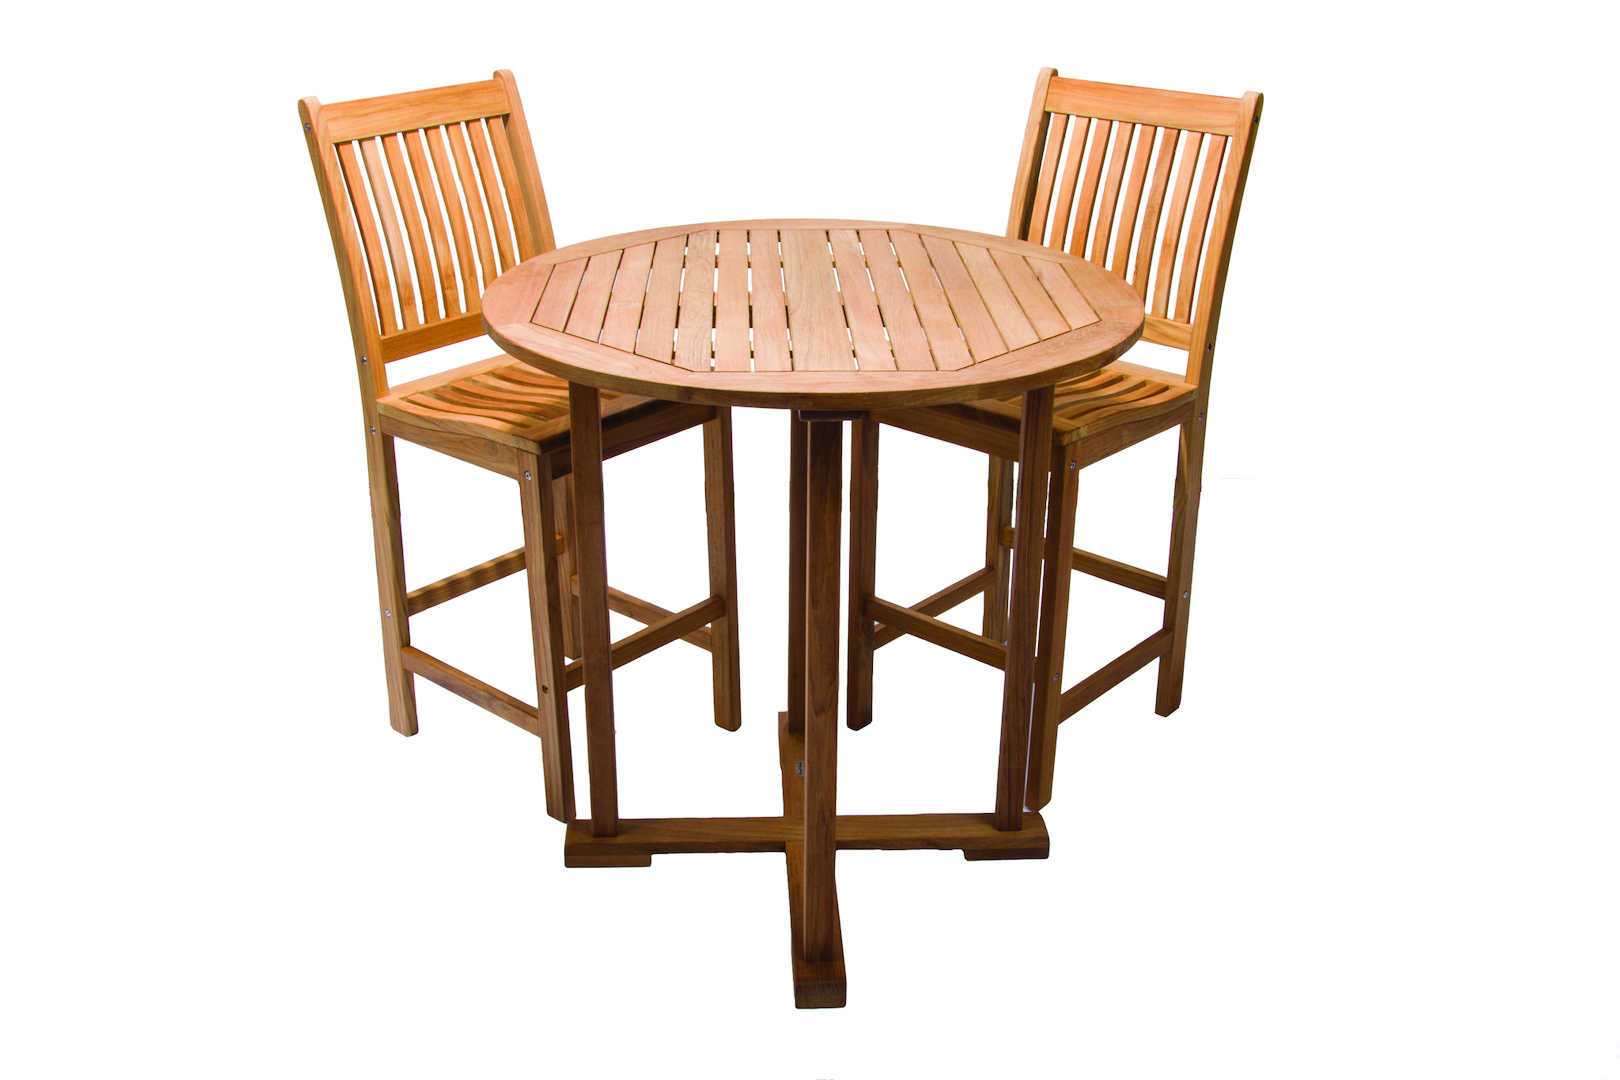 Royal Teak Collectionu0027s Teak Bar Table With Teak Bar Chair